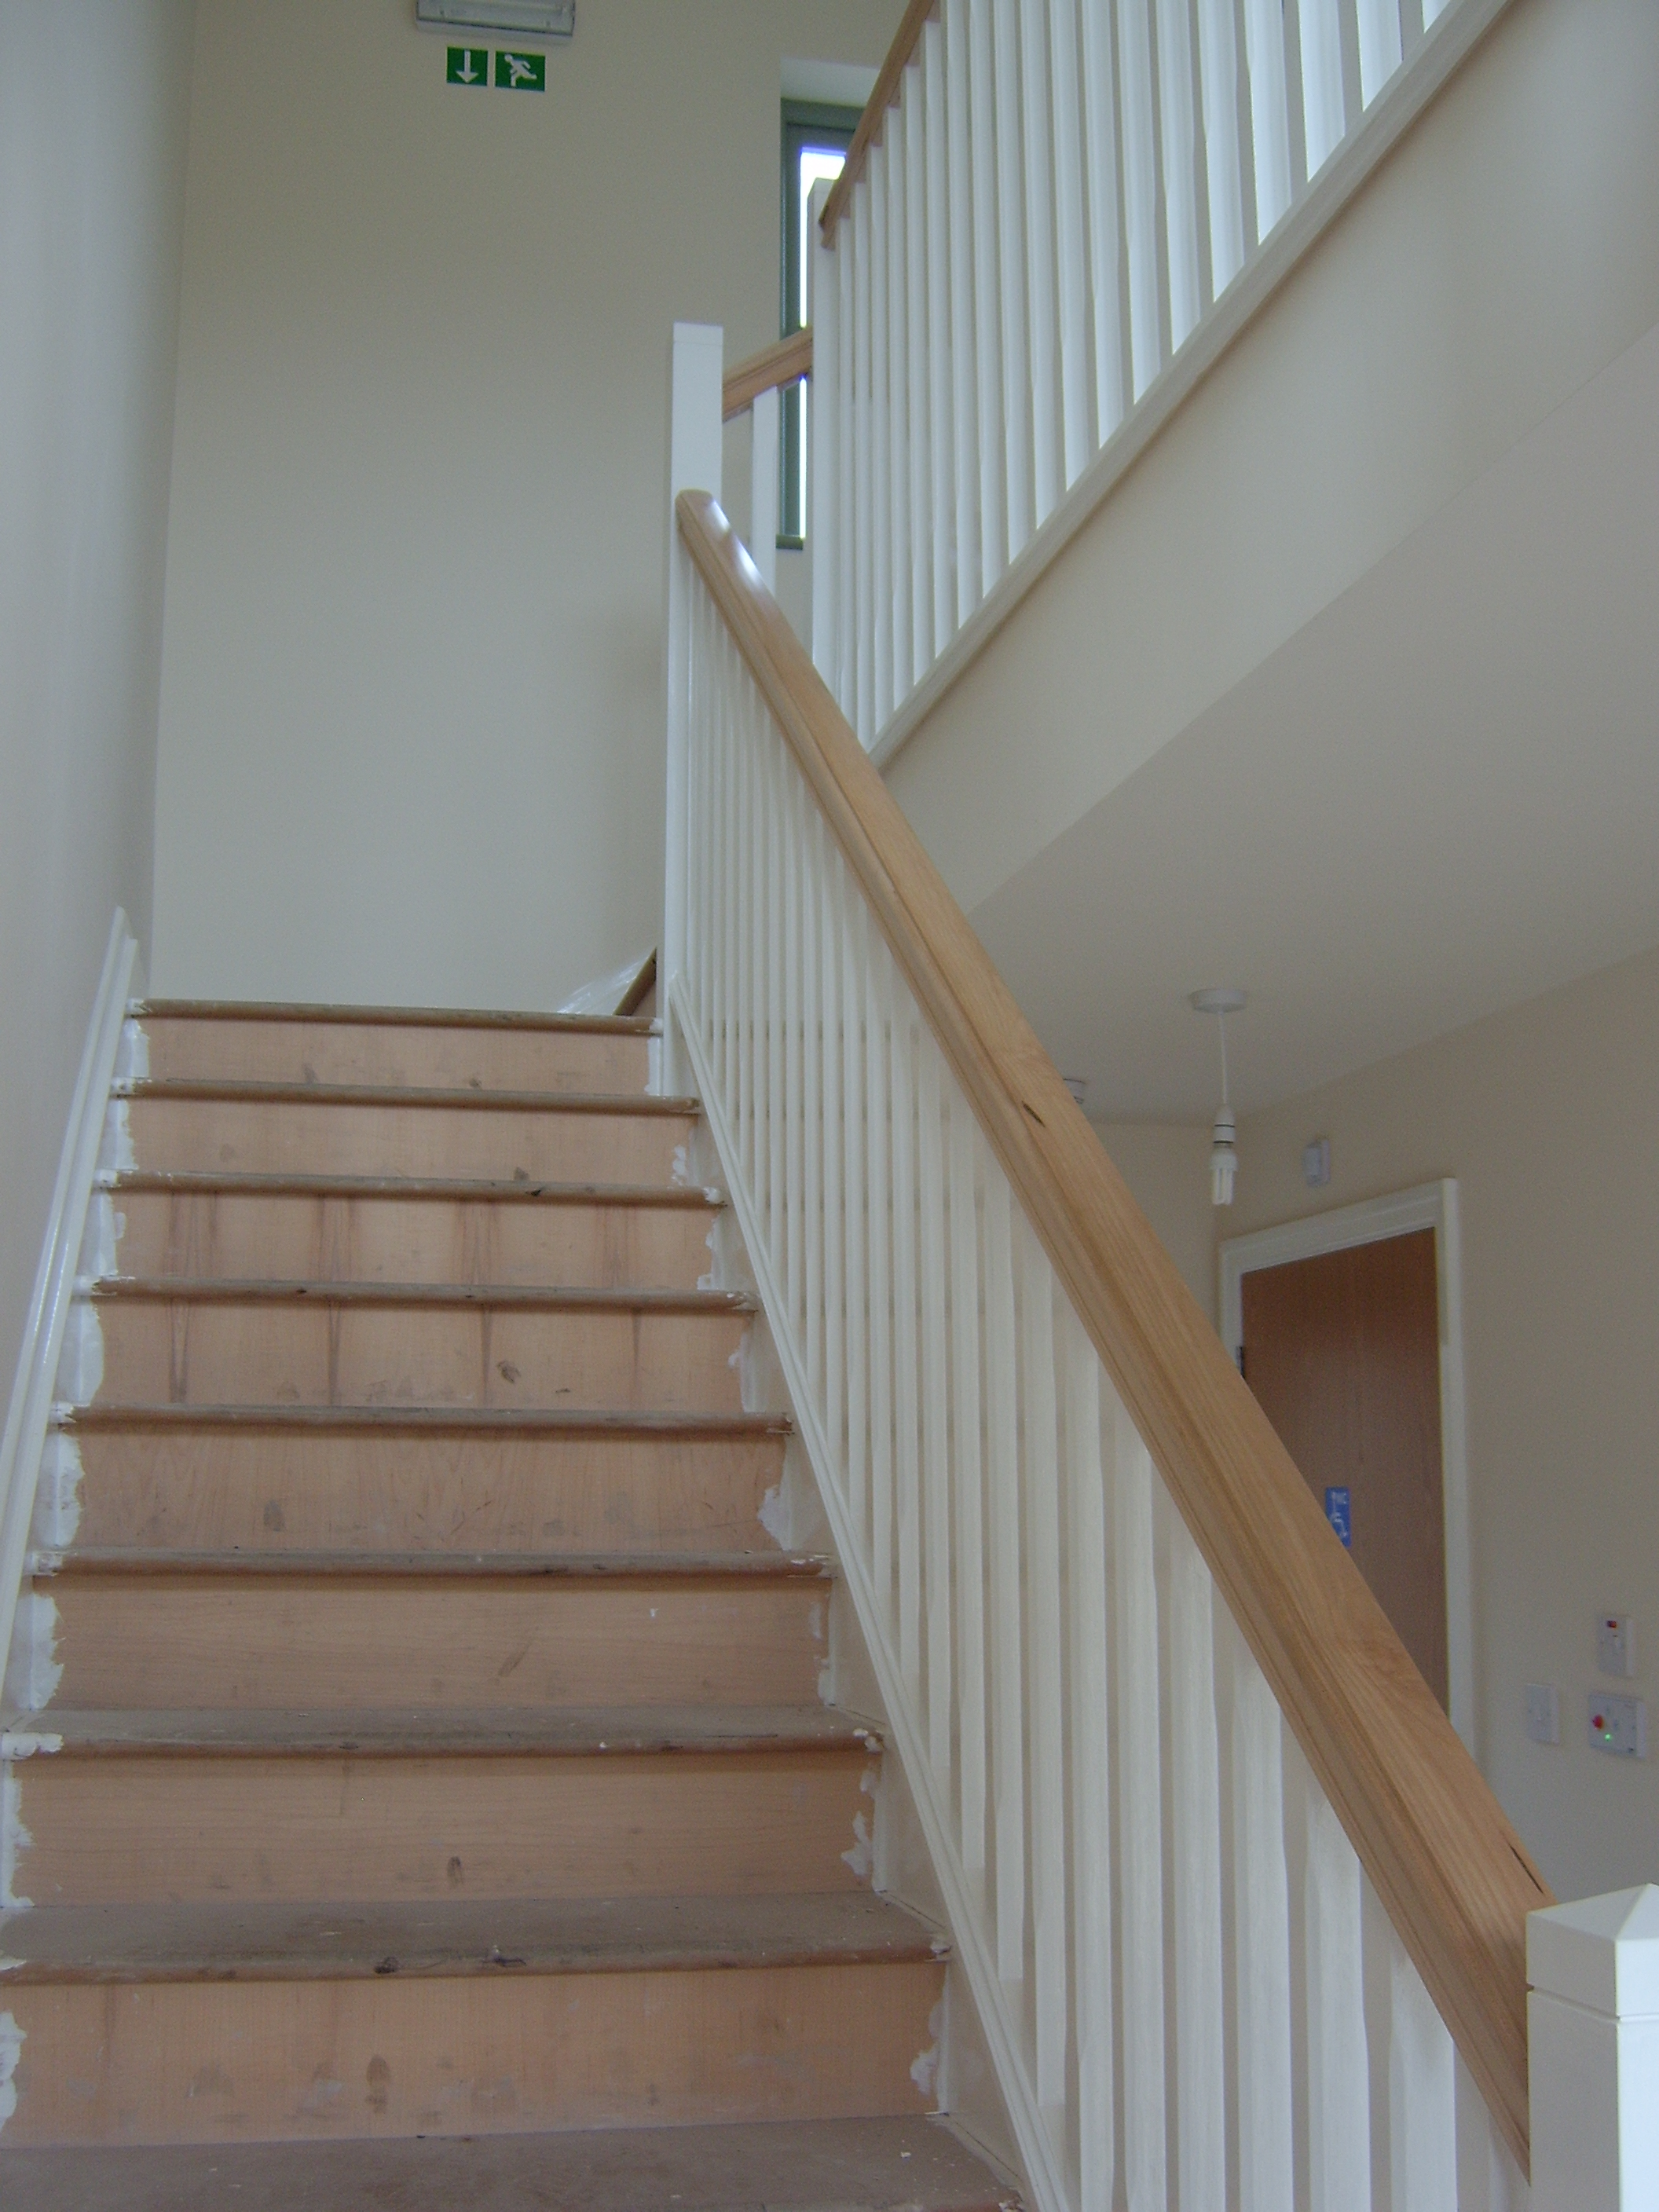 Beau Solid Maple Hand Rail And New Stairs In New Build Property